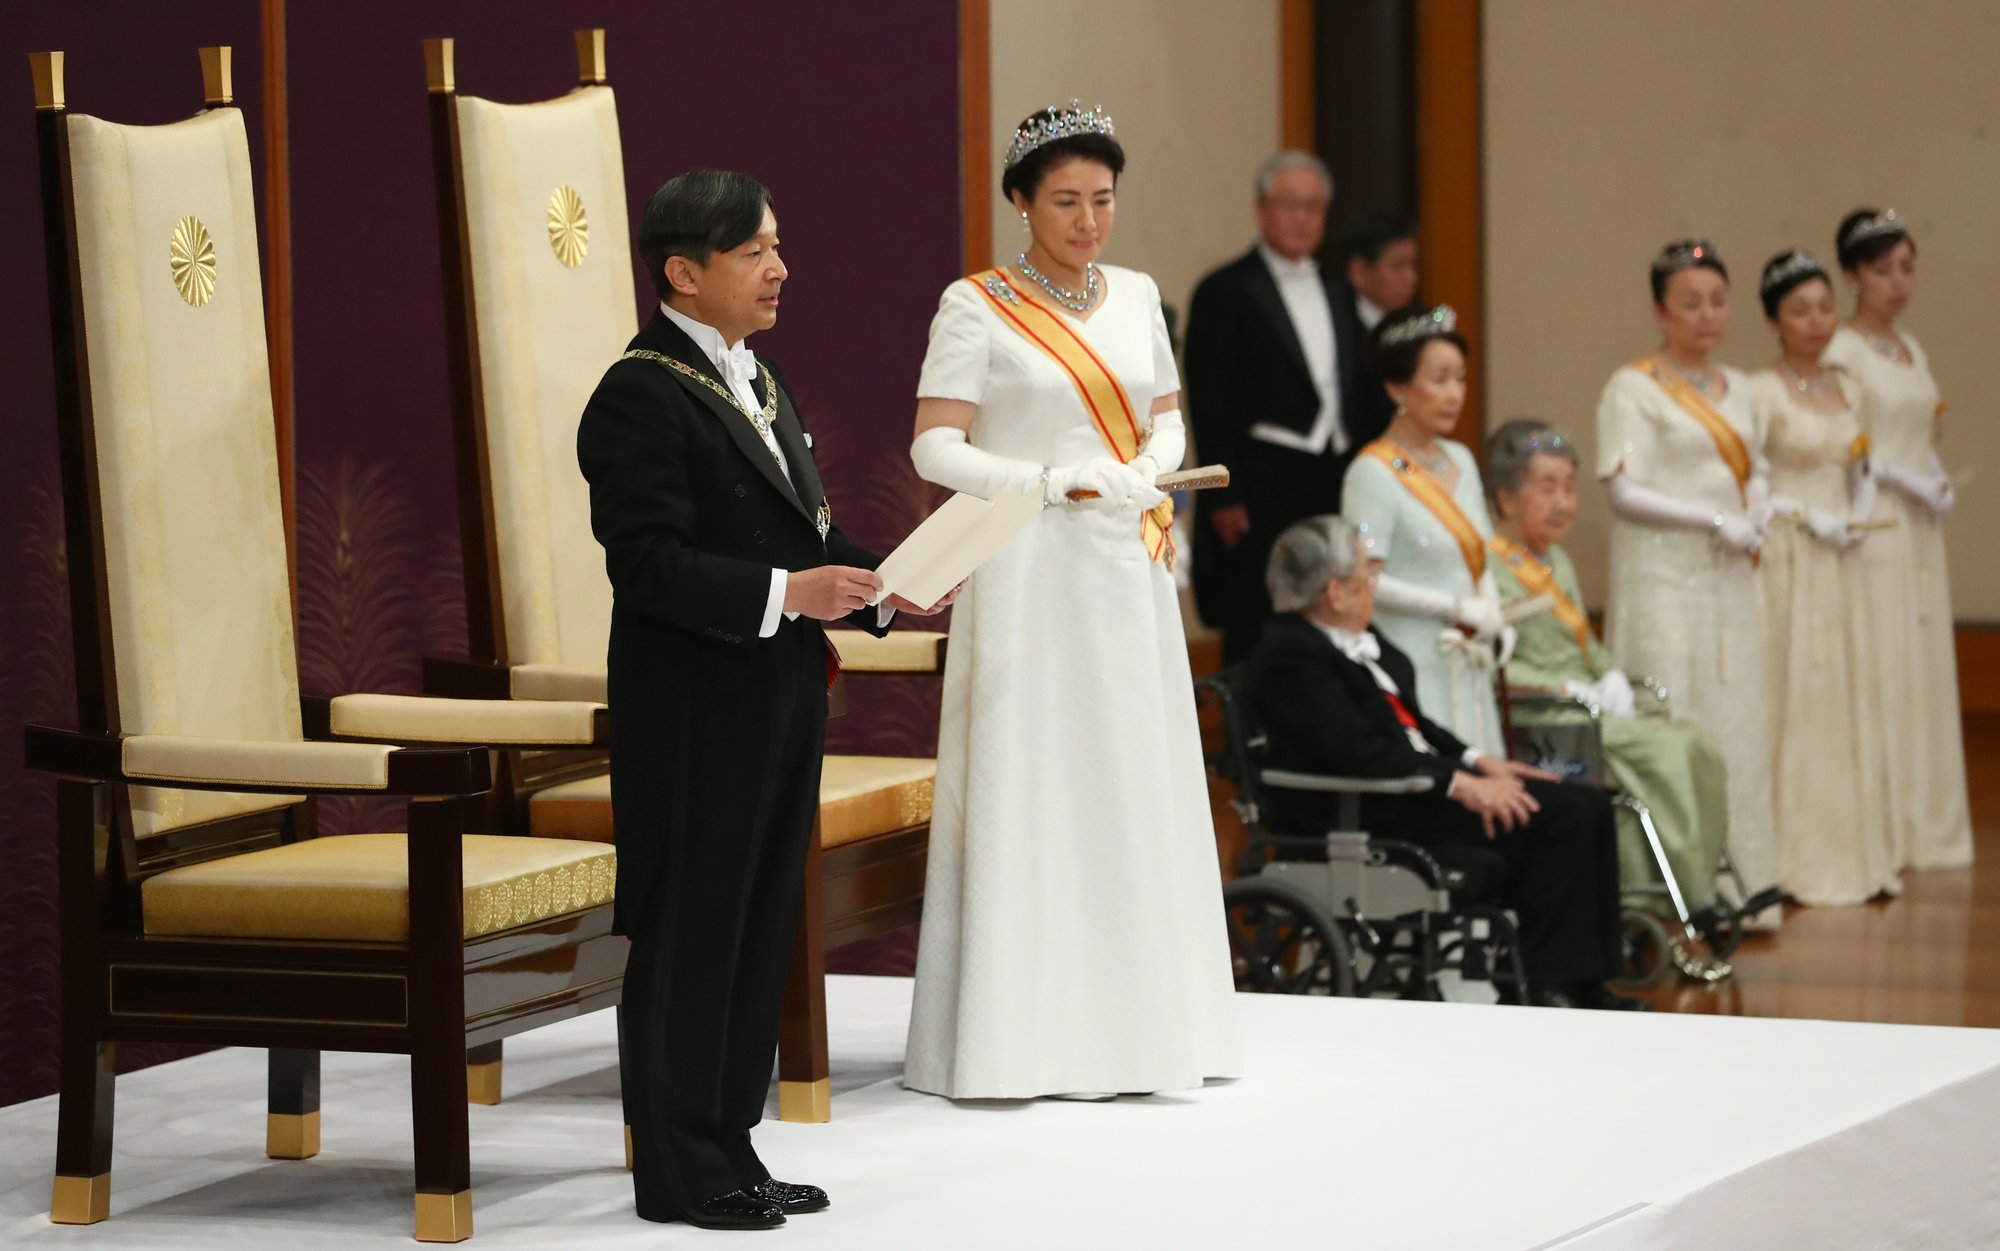 On 1st day as Japan's emperor, Naruhito vows to pursue peace